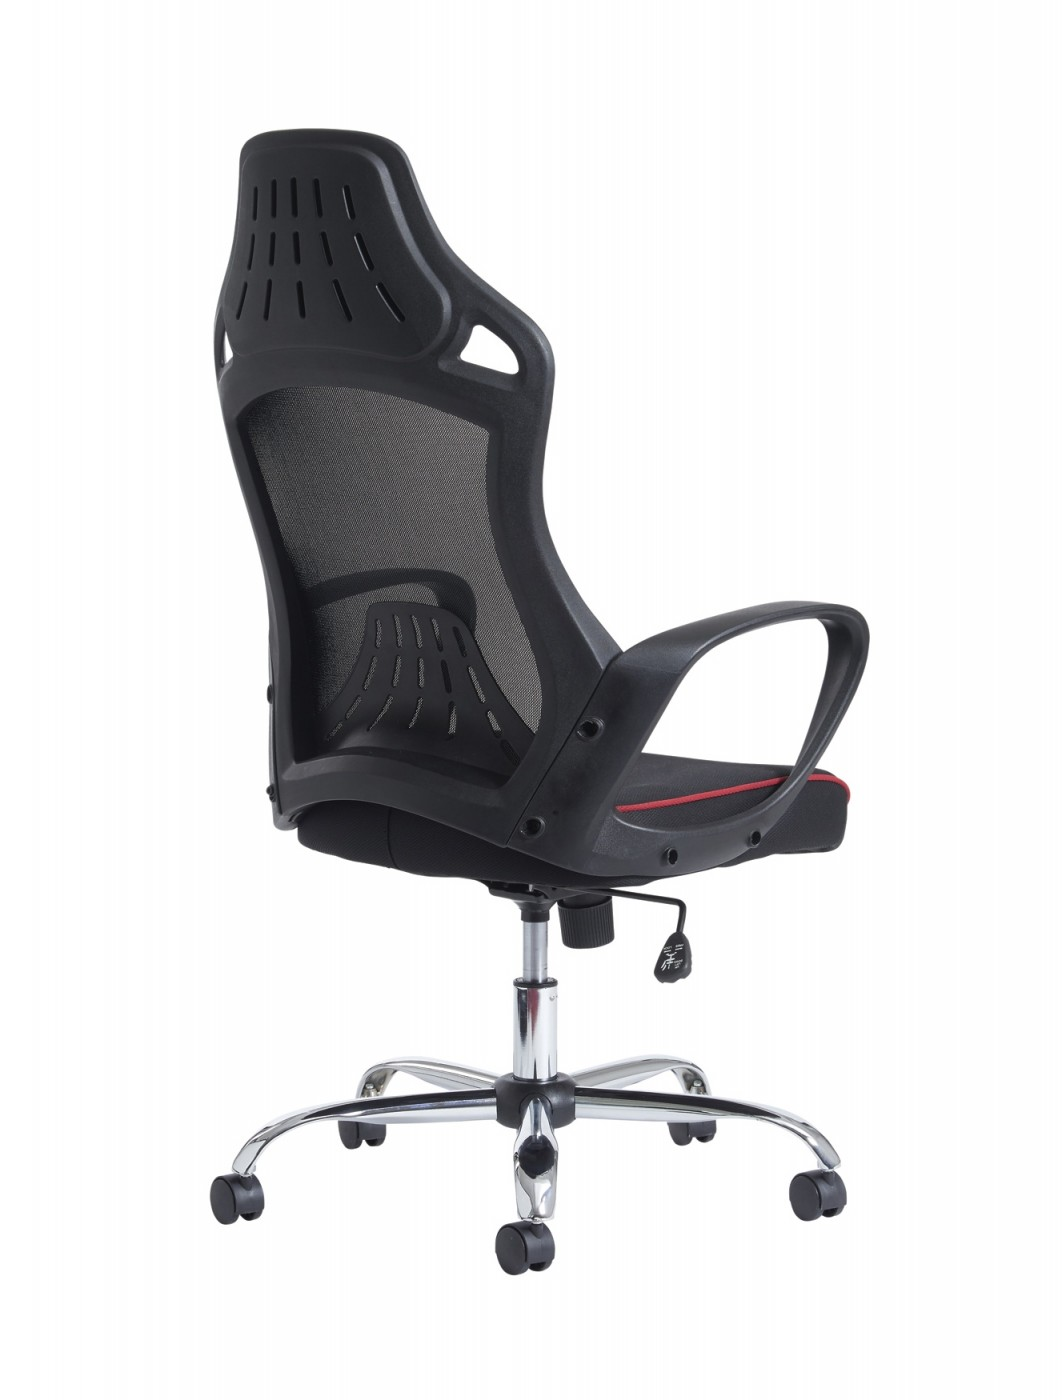 Office chair back view - Dams Andretti High Mesh Back Office Chair And300t1 Kr Enlarged View